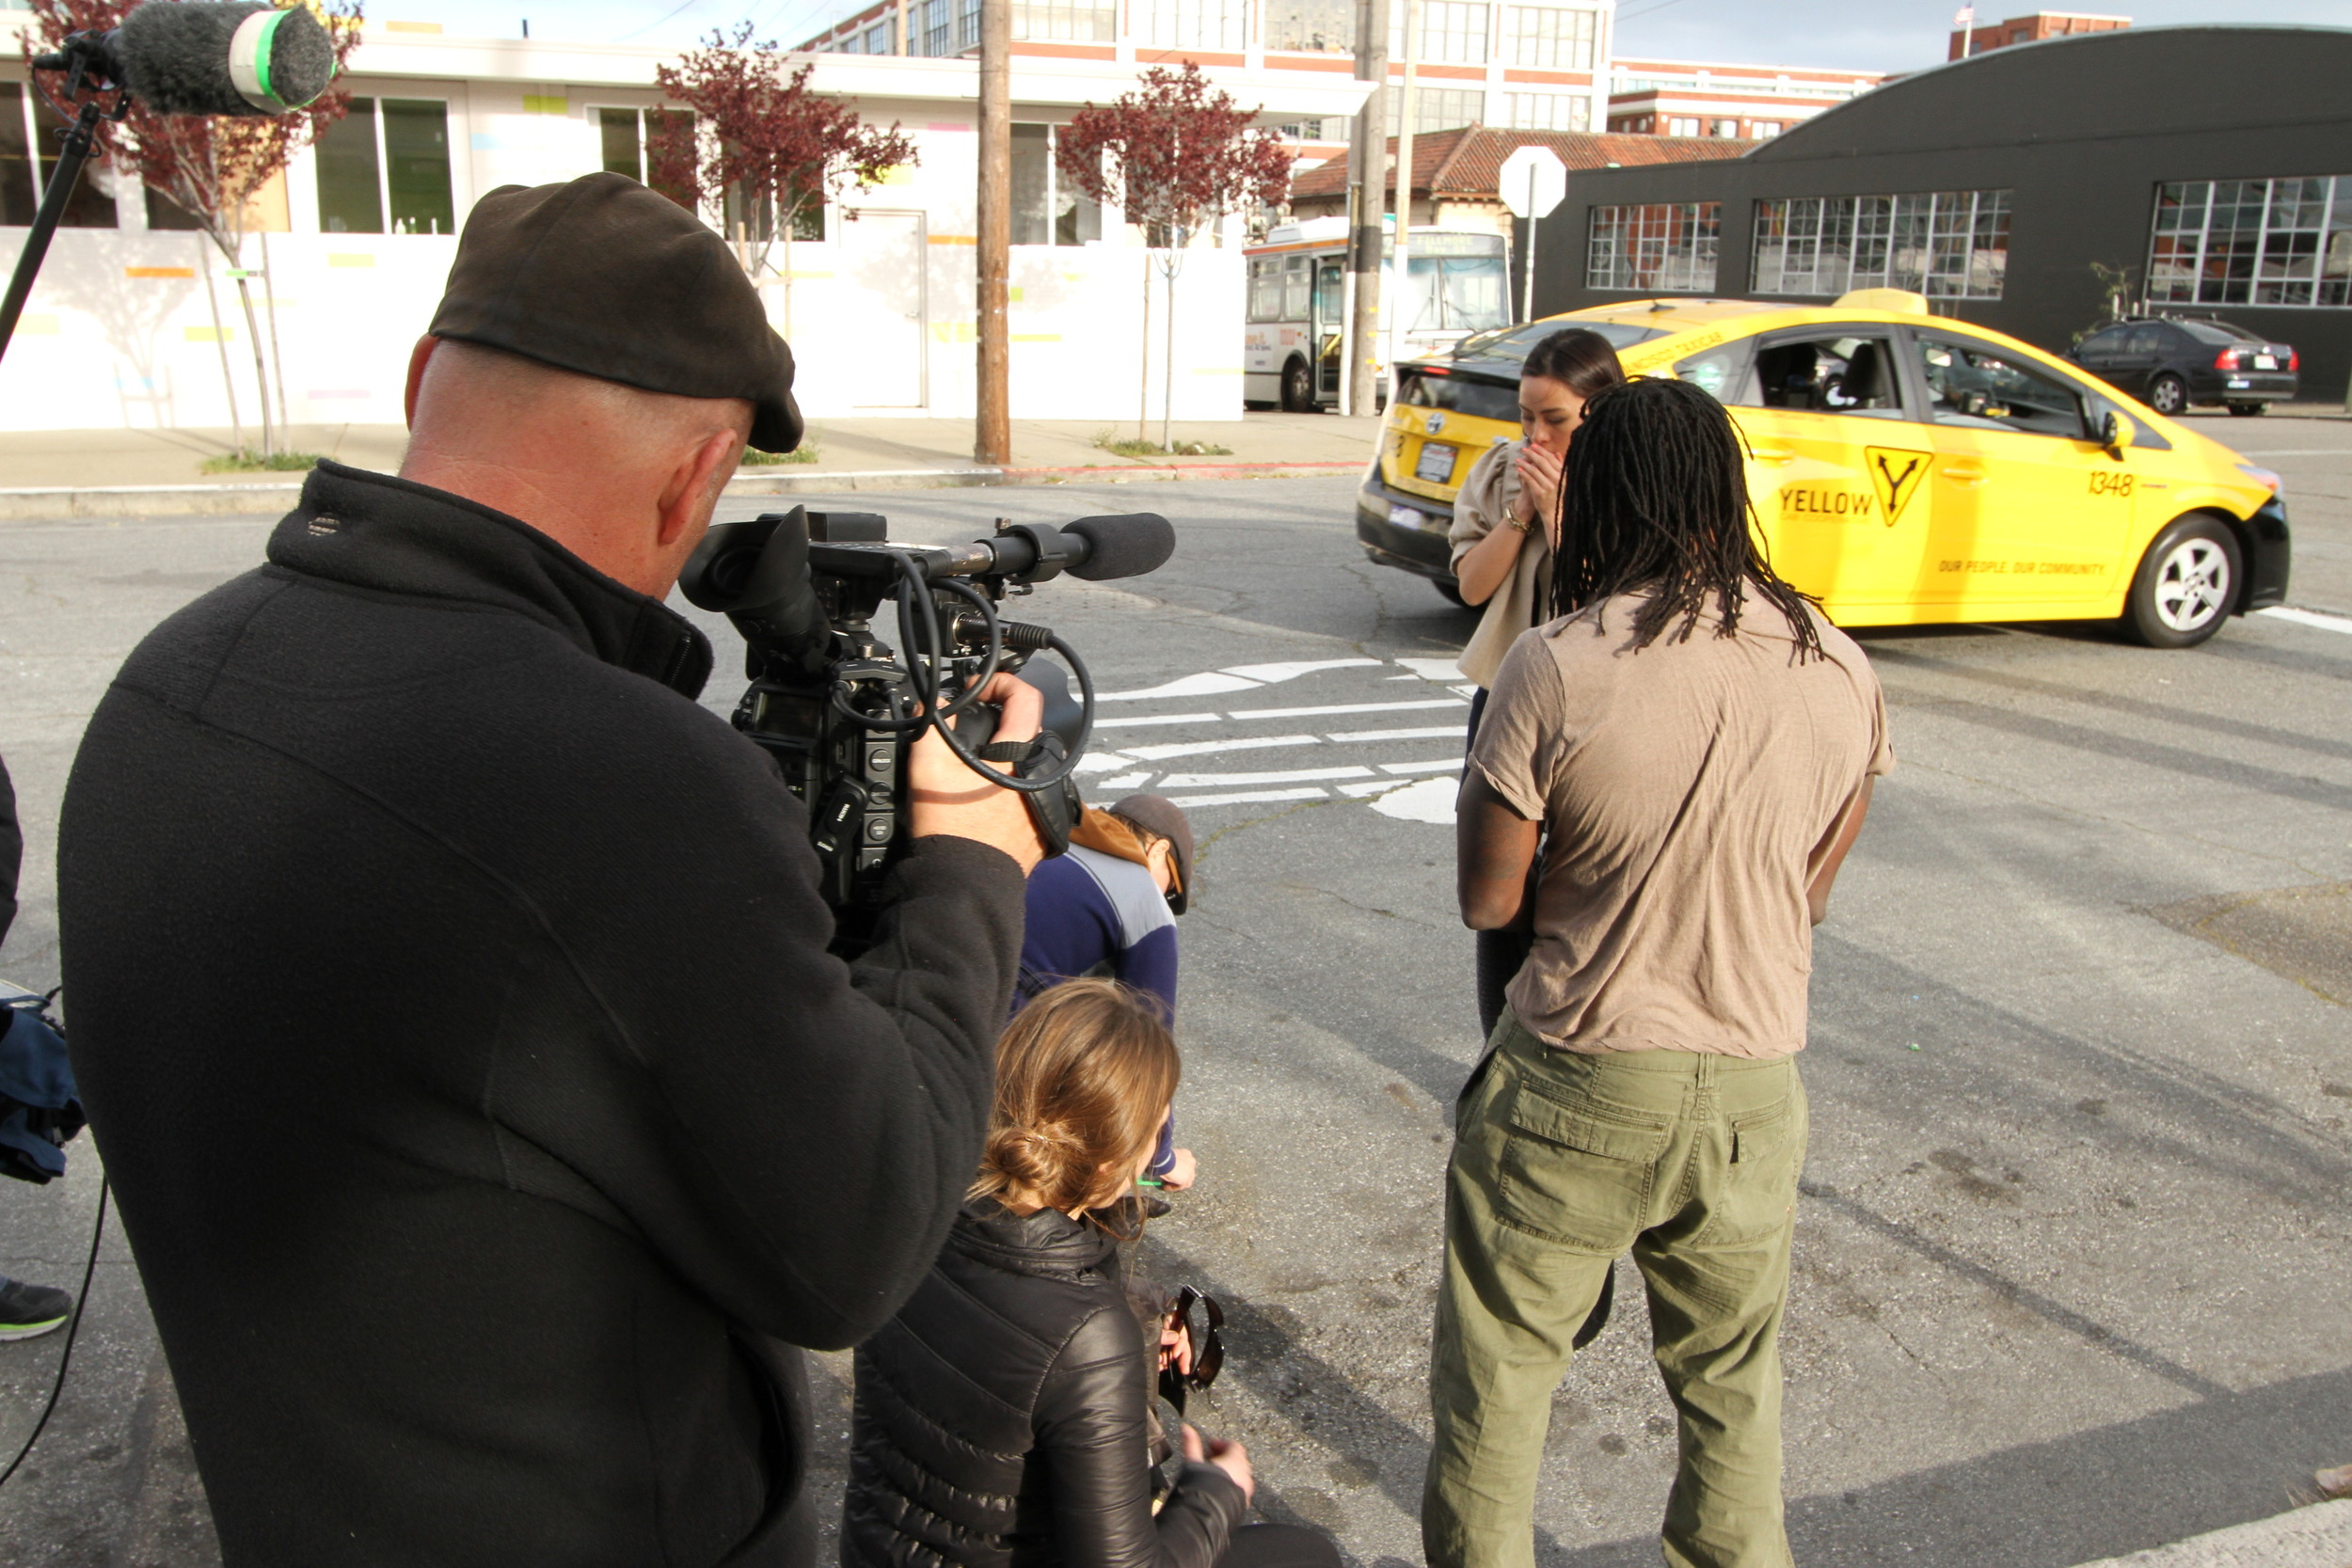 Behind the scenes HM 6 Skyler, Stephen Buckingham, Assitant cameraman Avery Hudson, Actor Diana Lu.jpg